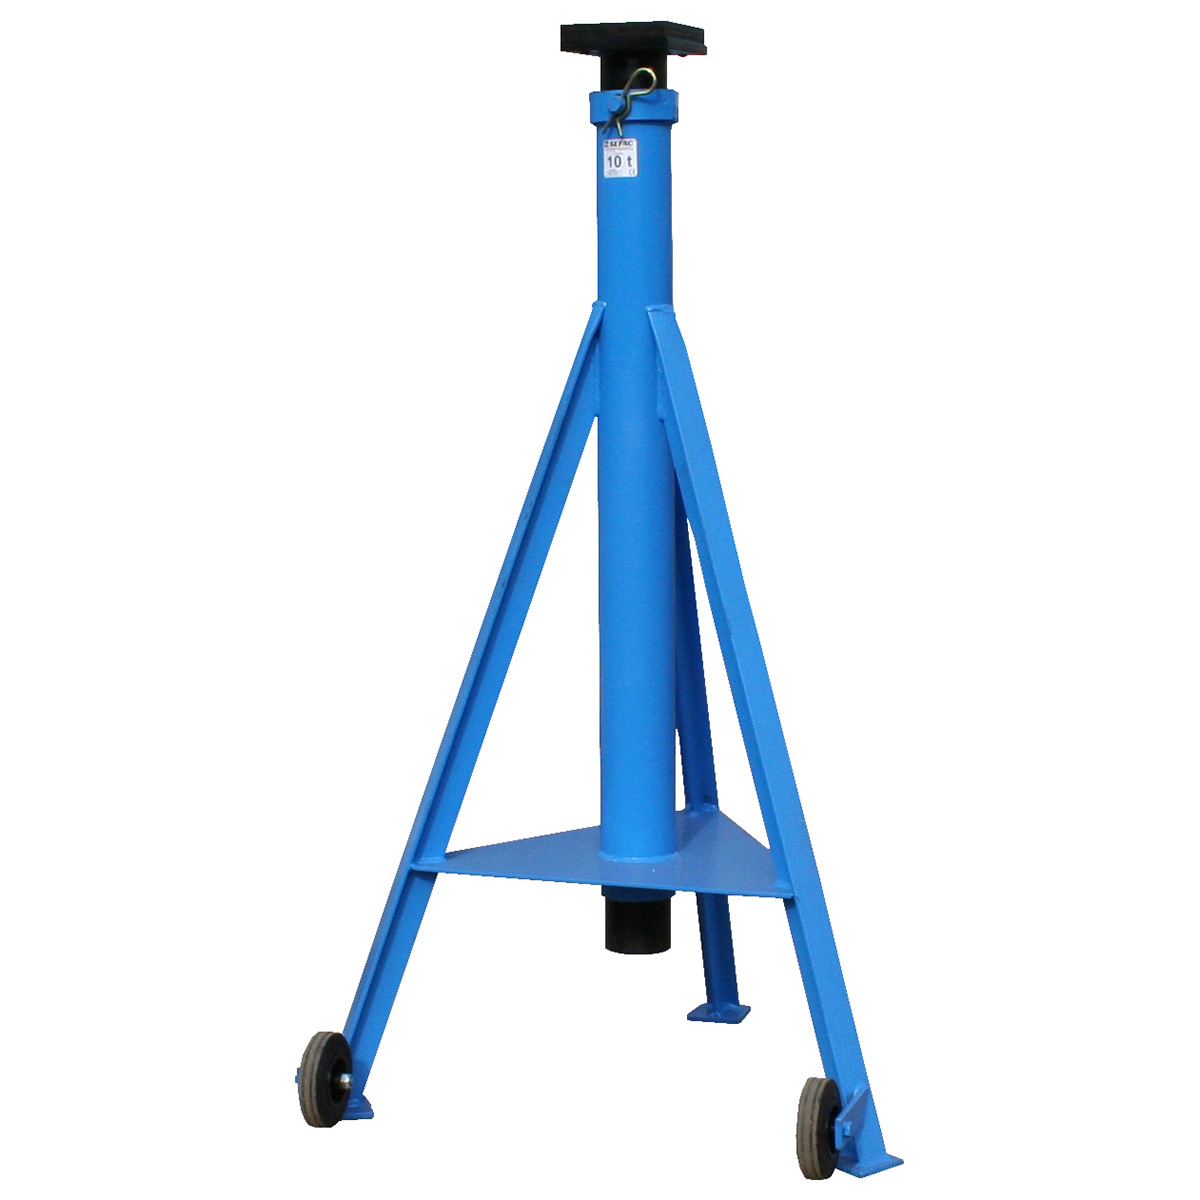 Tbe 528 Support Stand Sefac Stands Amp Trestles For Heavy